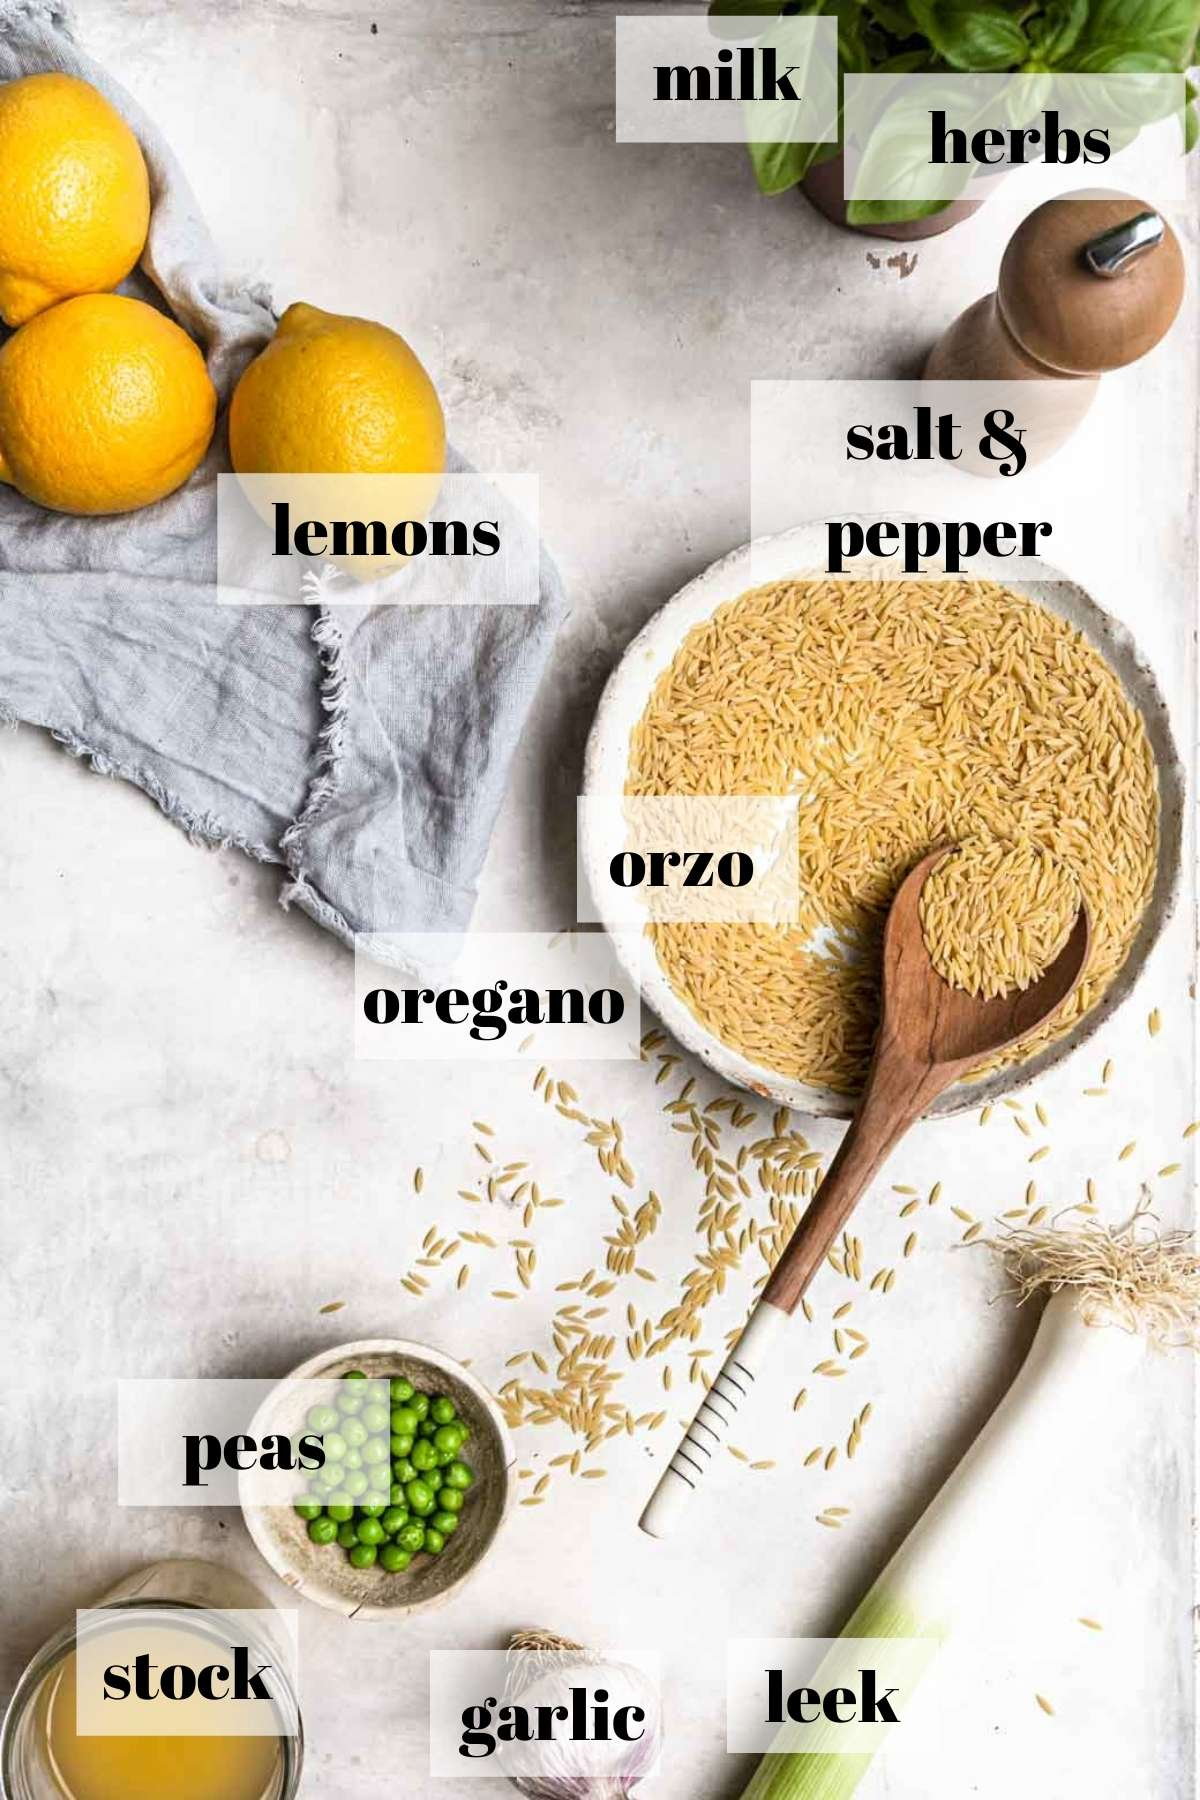 Lemon orzo ingredients labelled and laid out on a white table.